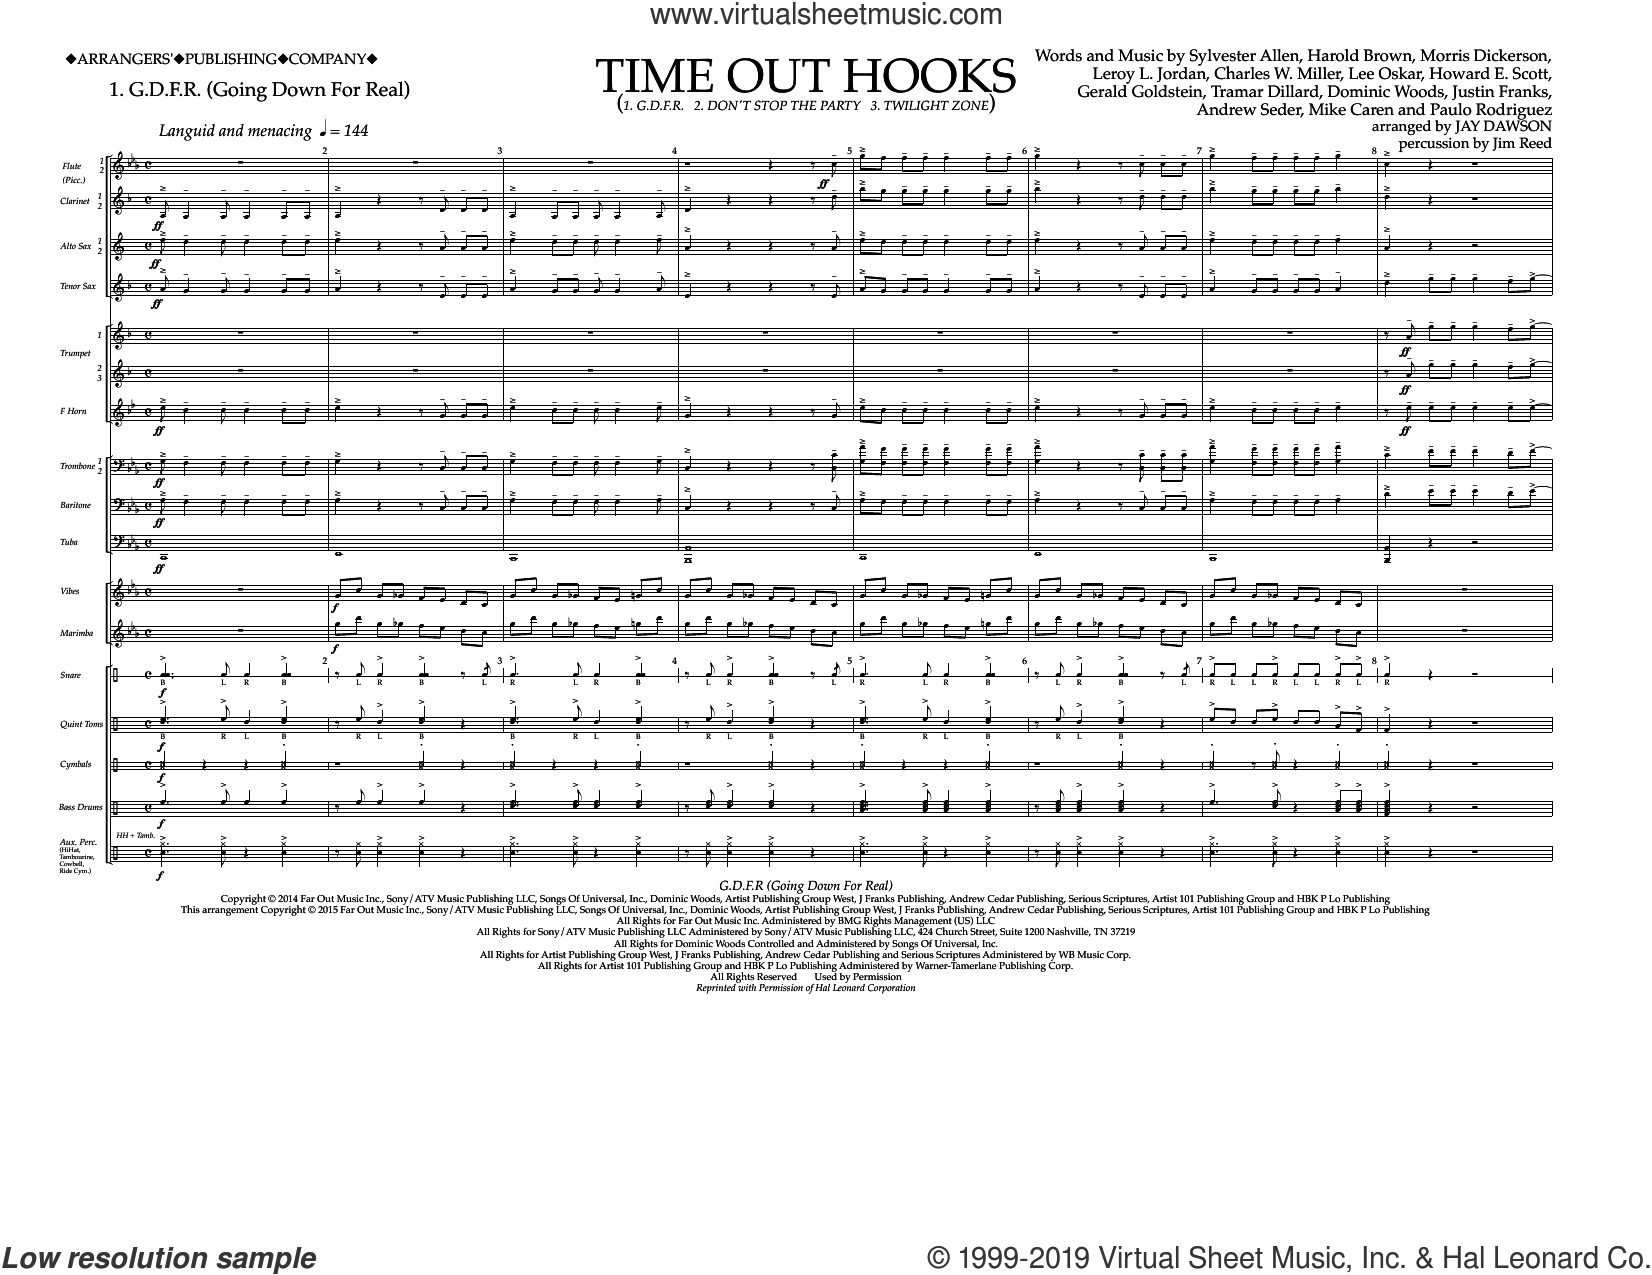 Time Out Hooks (COMPLETE) sheet music for marching band by Jay Dawson, intermediate skill level